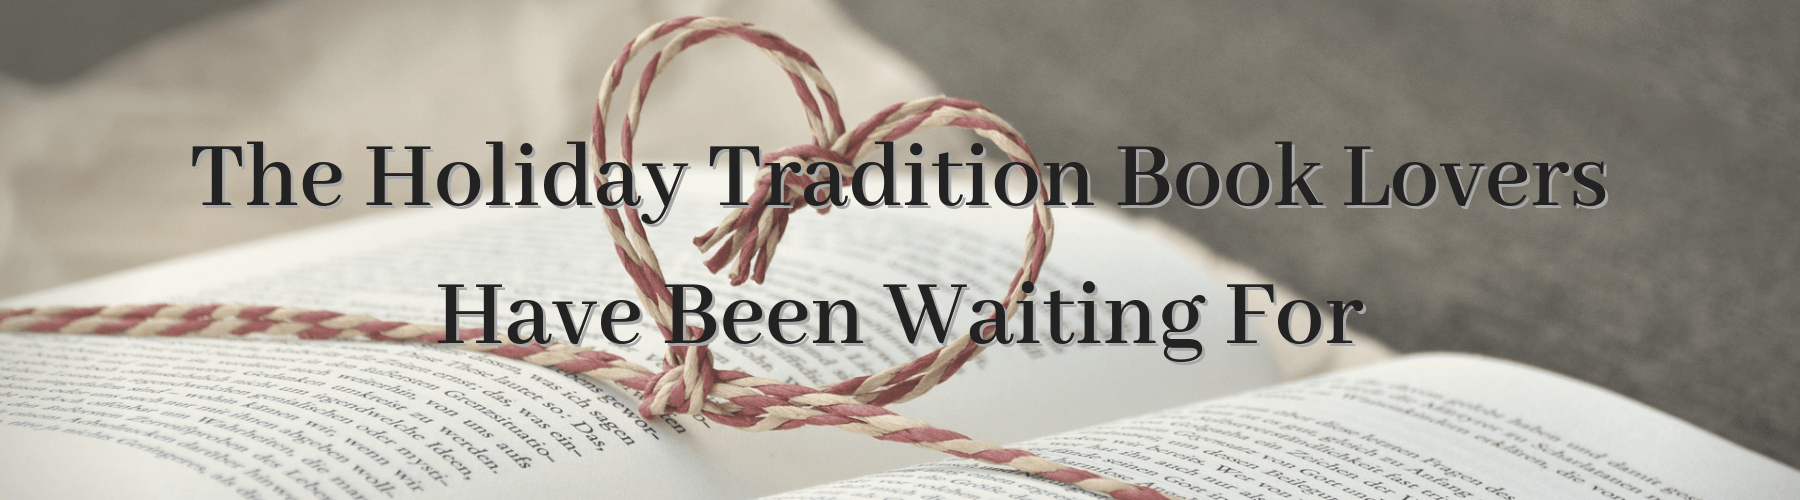 The Holiday Tradition Book Lovers Have Been Waiting For